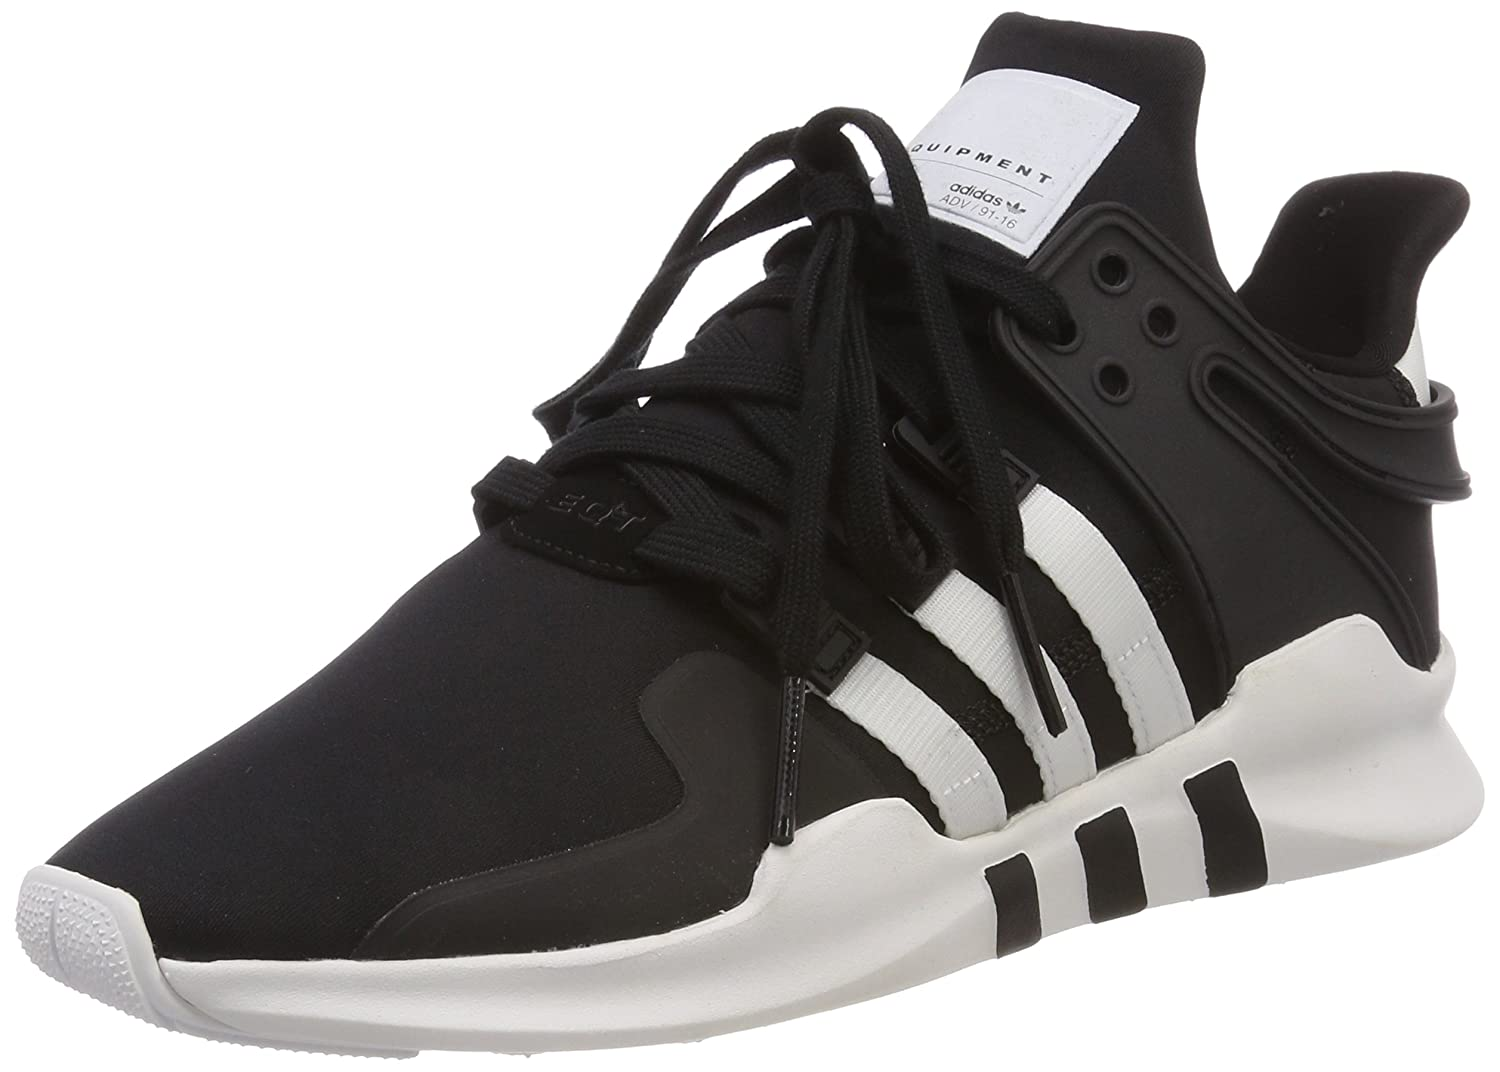 newest collection 434fb 74ea8 adidas Equipment Support Advanced, Sneakers Basses Homme  Adidas Originals   Amazon.fr  Chaussures et Sacs